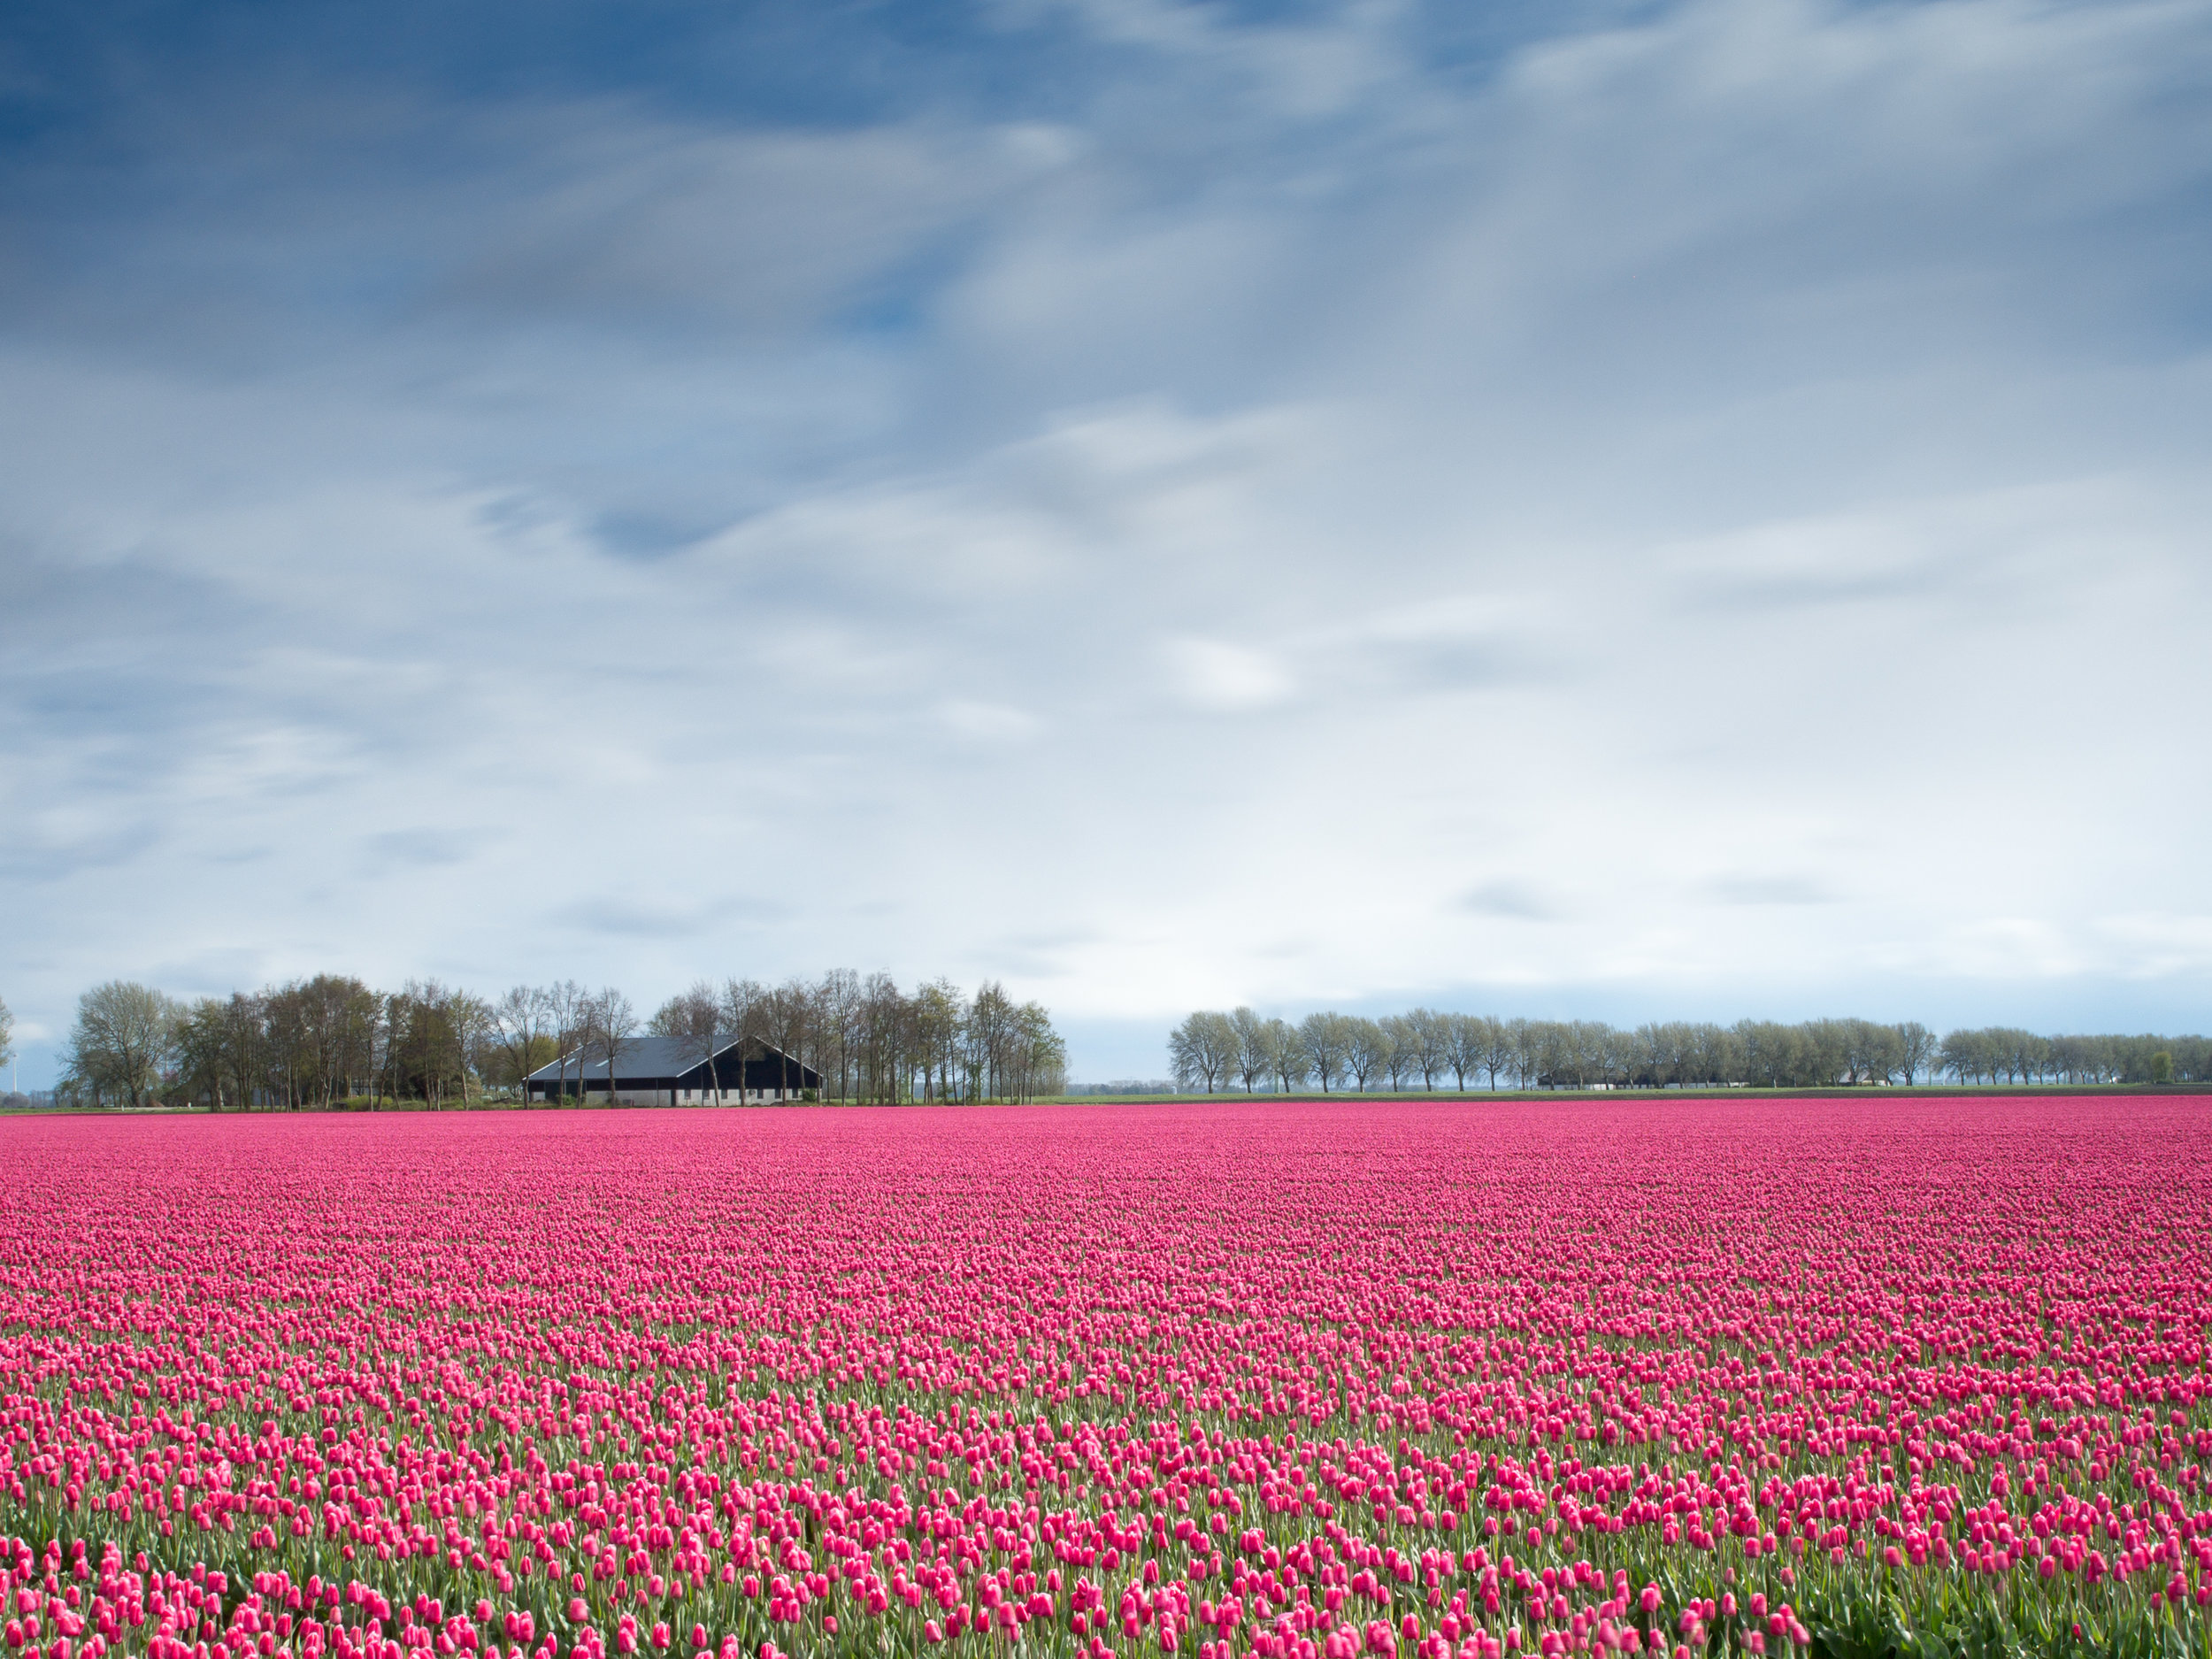 Garden and Nature travel, think the Tulip Time river cruise in April (Amsterdam) would be simply breathtaking